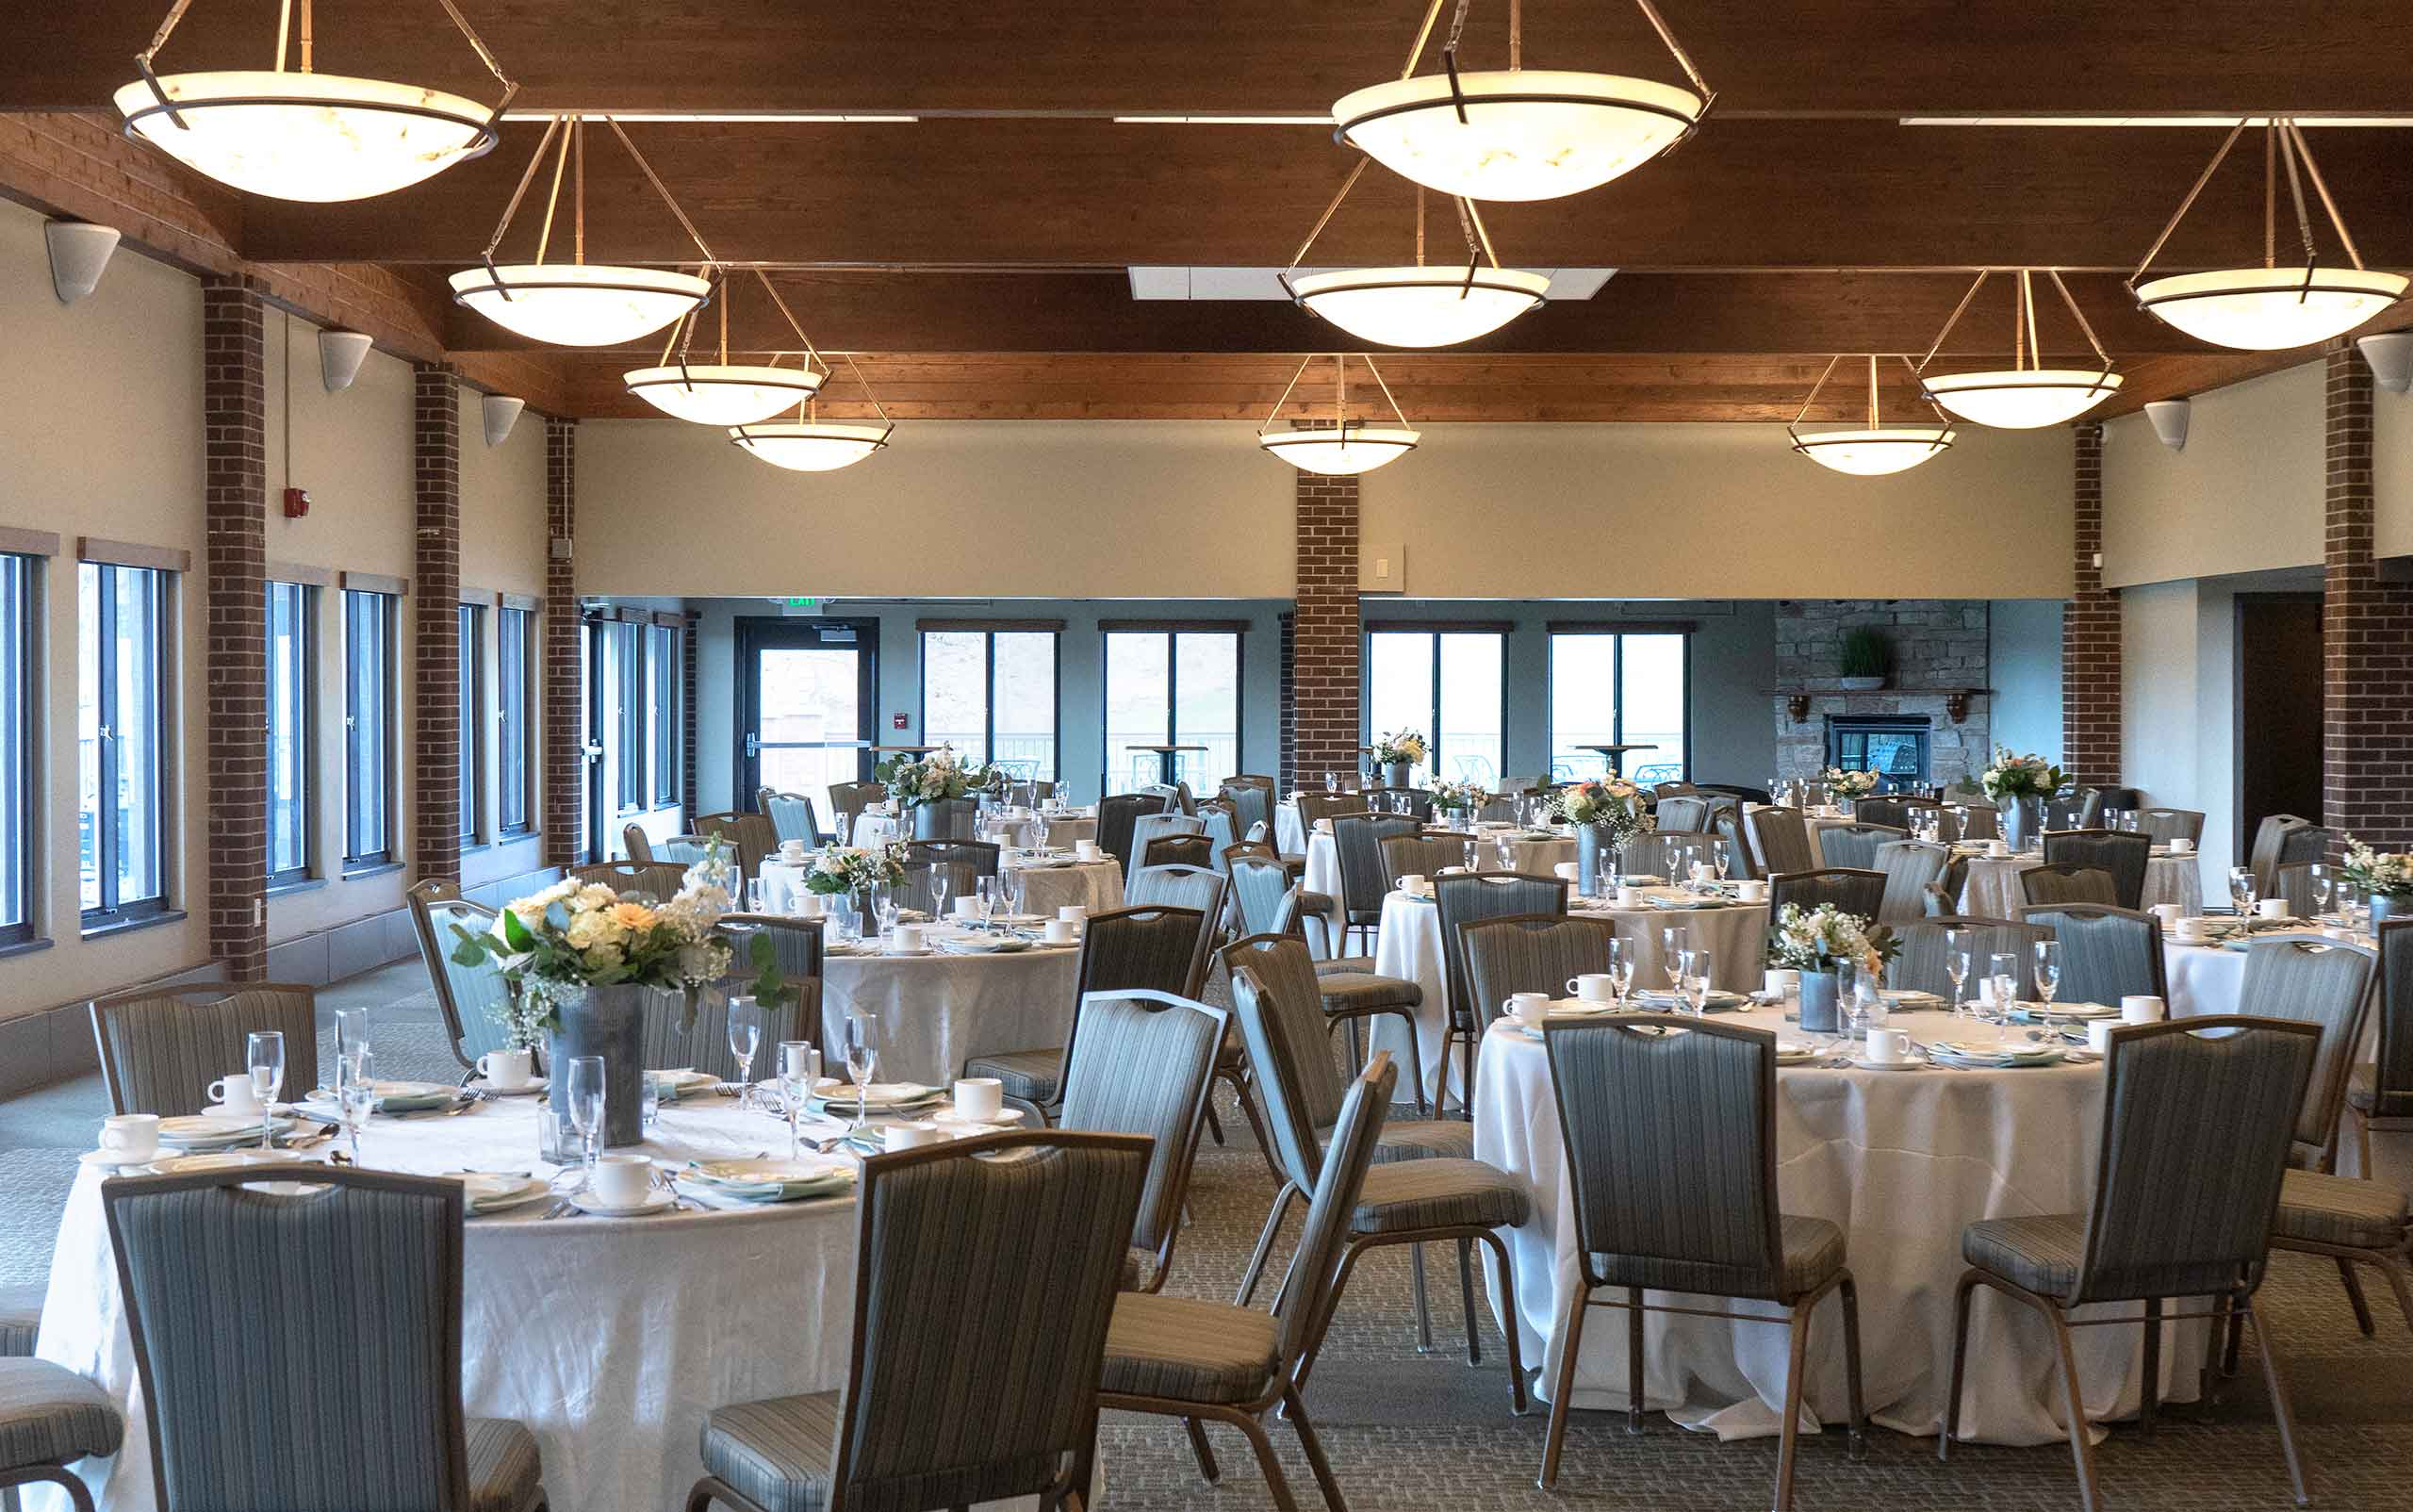 Braemar Meeting and Events space with decorated tables